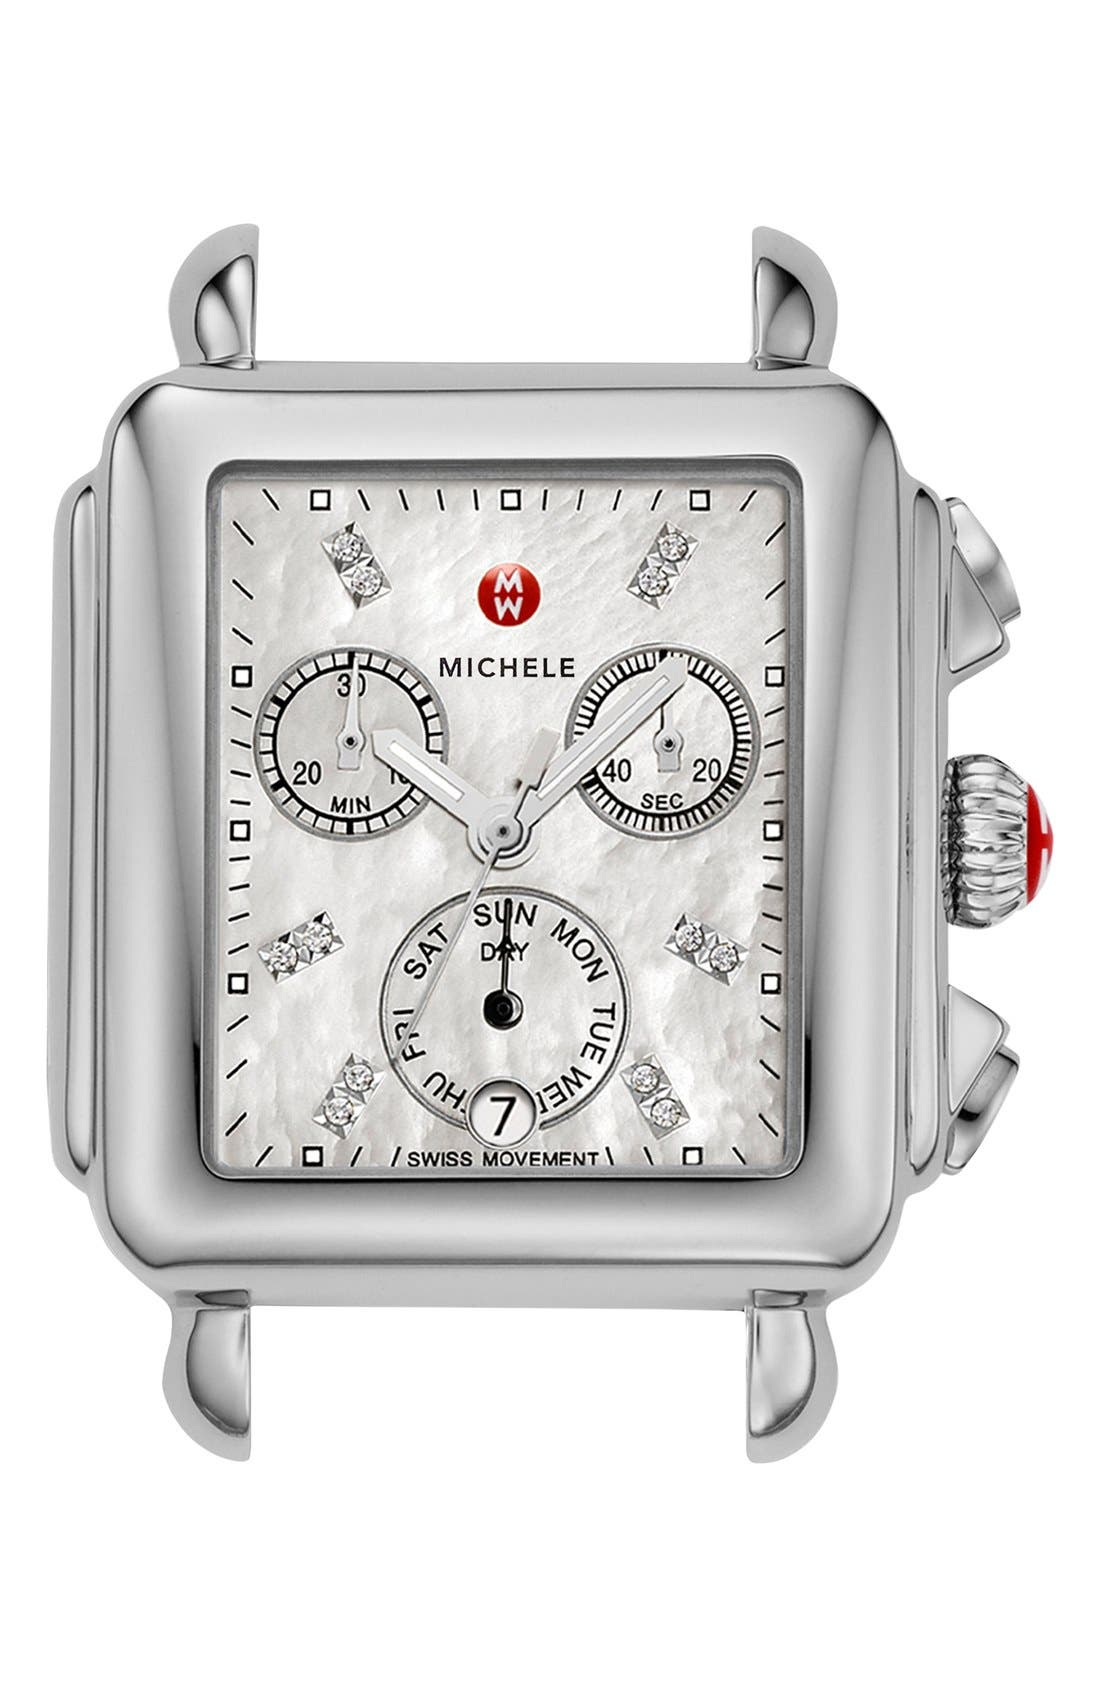 Main Image - MICHELE Deco Diamond Dial Watch Case, 33mm x 35mm